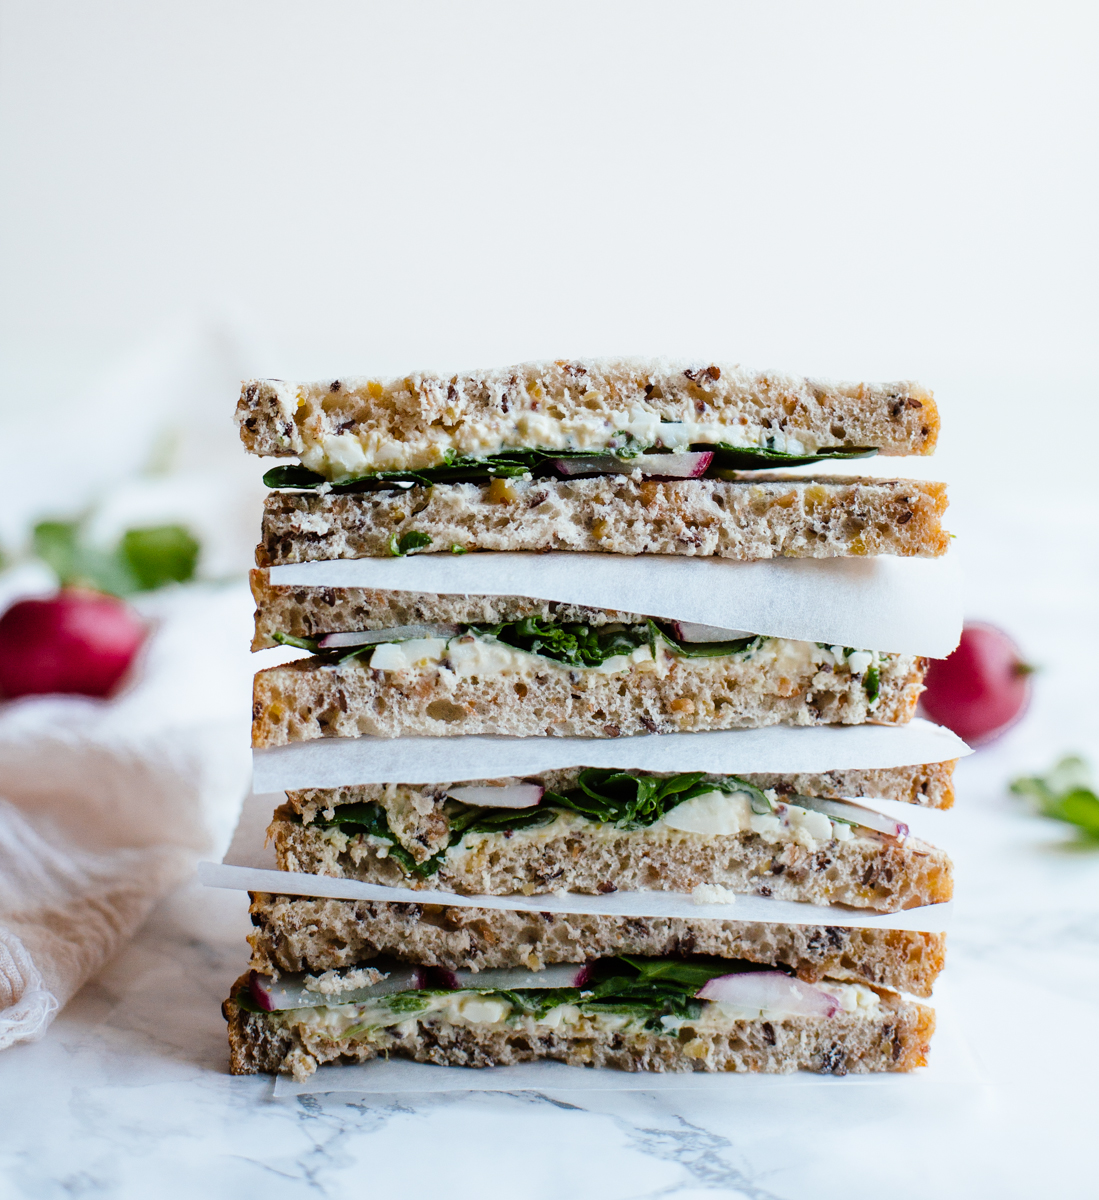 Egg, cress & radish sandwich